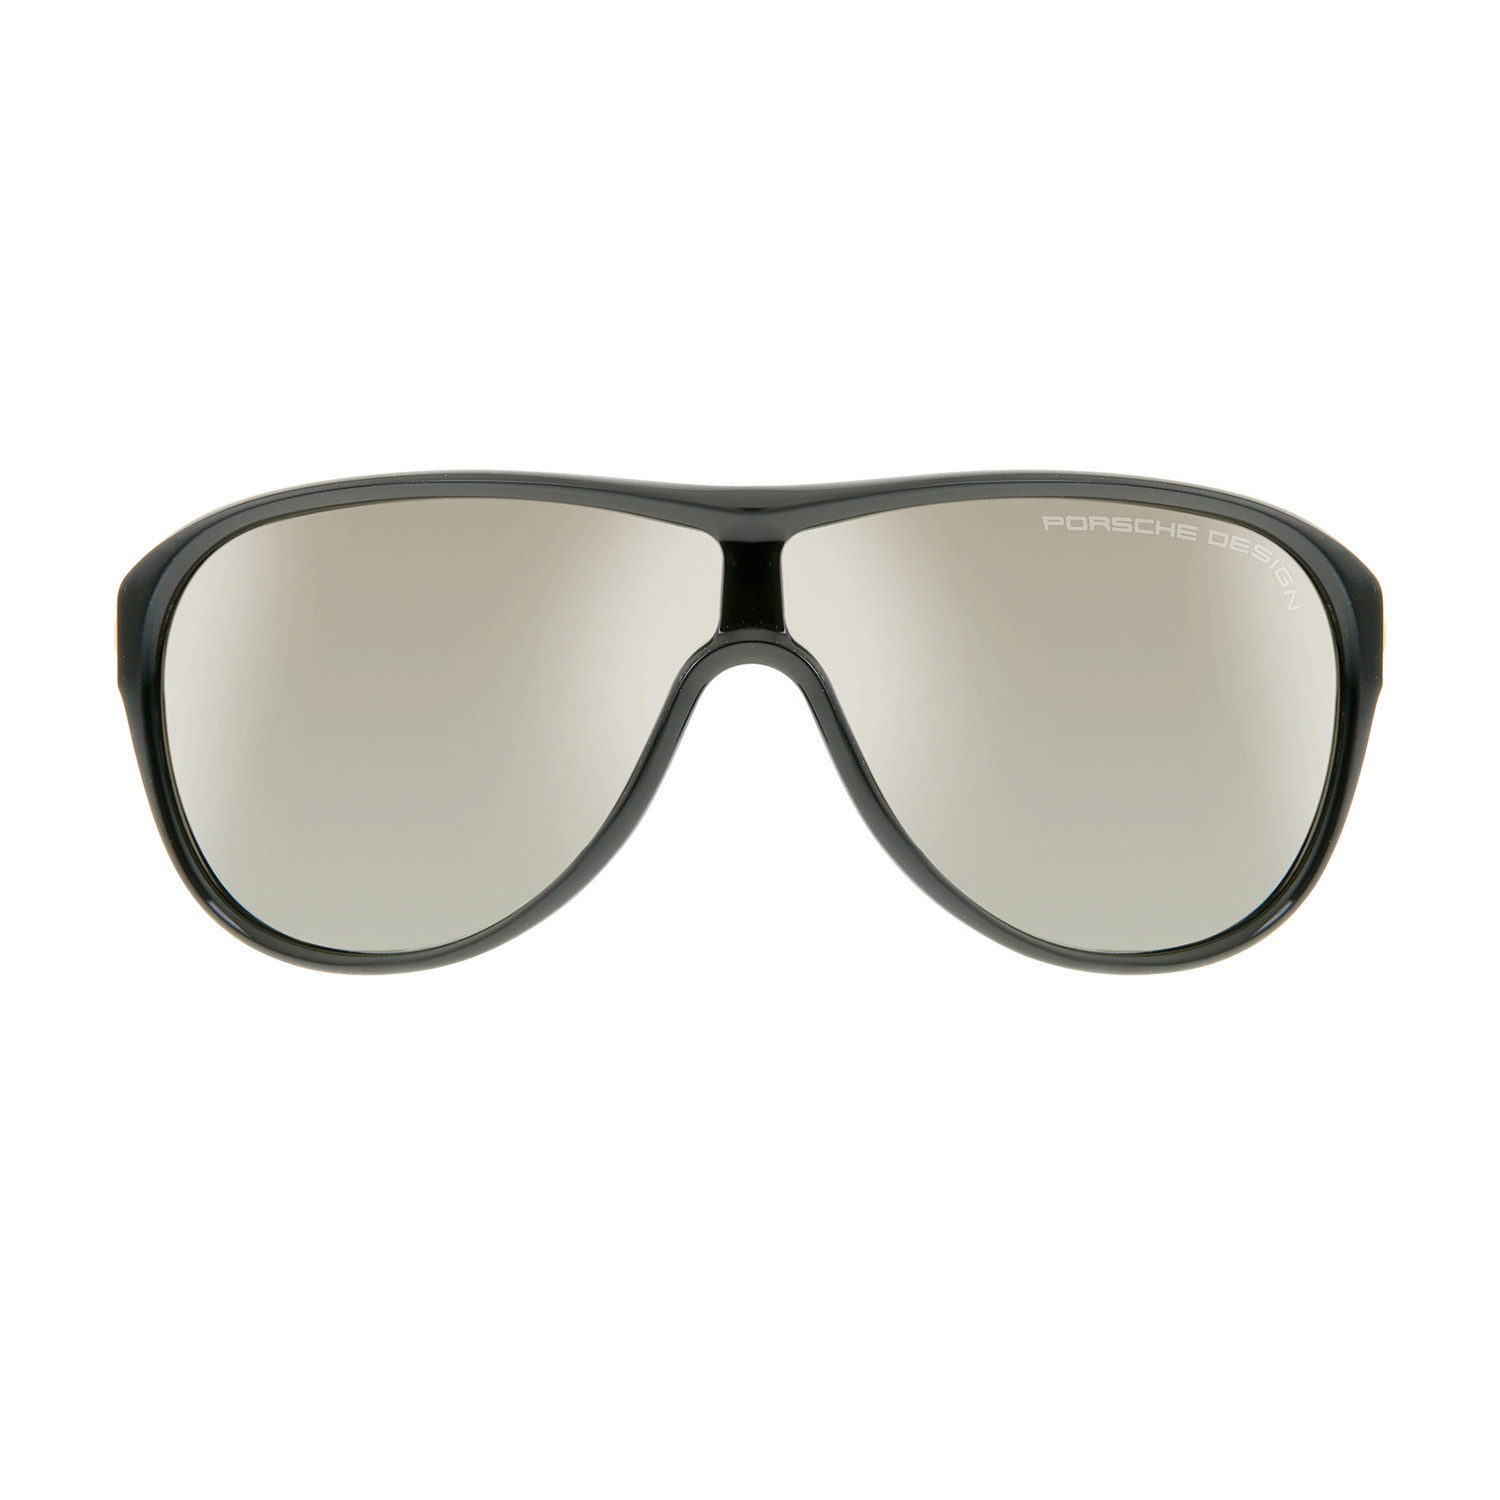 porsche design sport green frame gray lenses. Black Bedroom Furniture Sets. Home Design Ideas